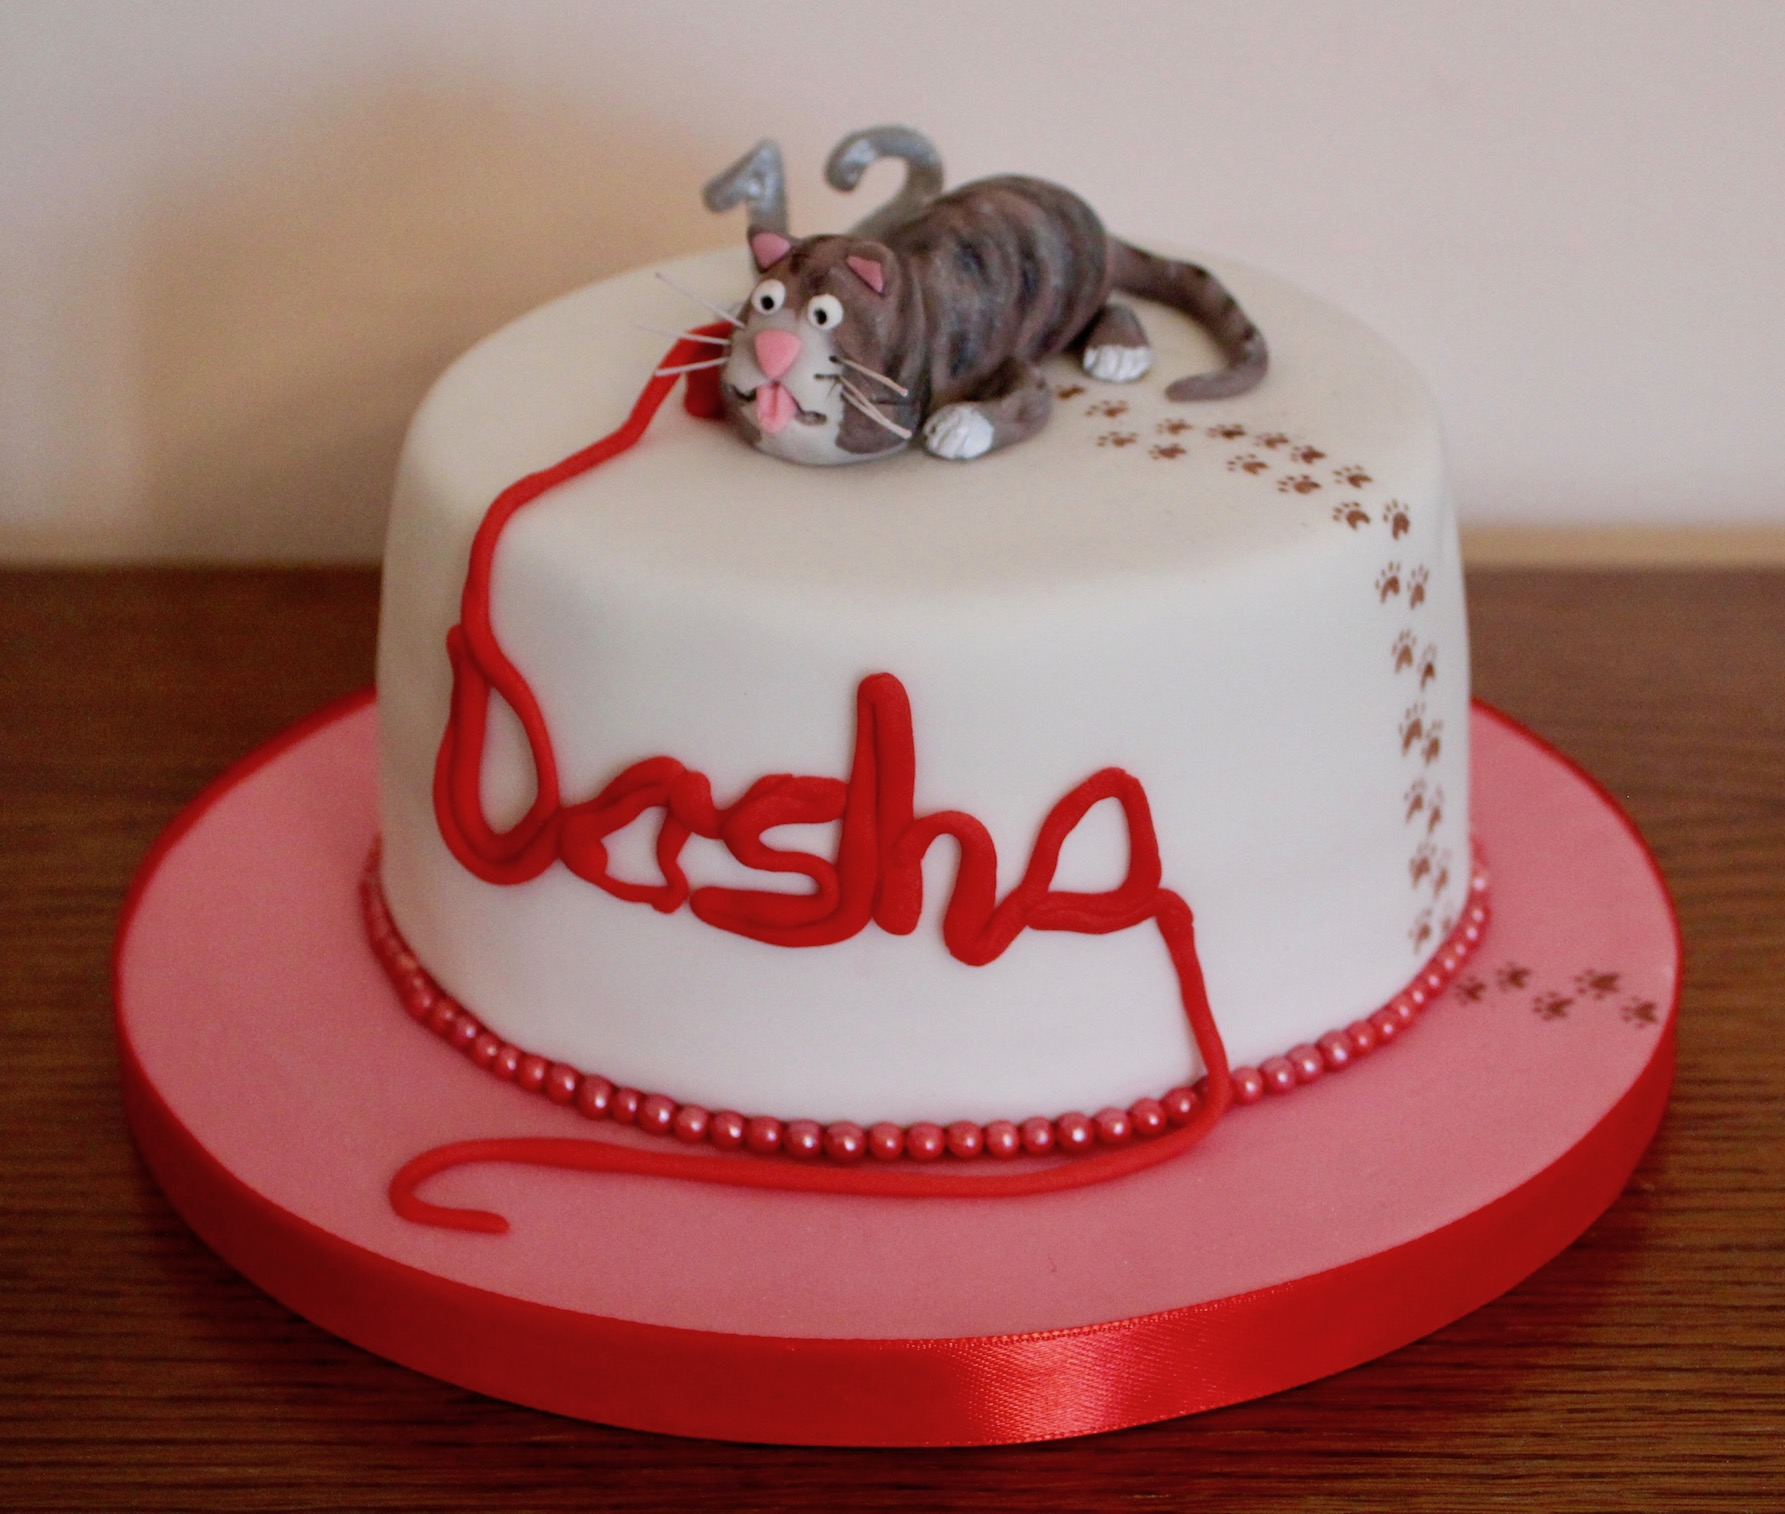 Tabby Cat Birthday Cake